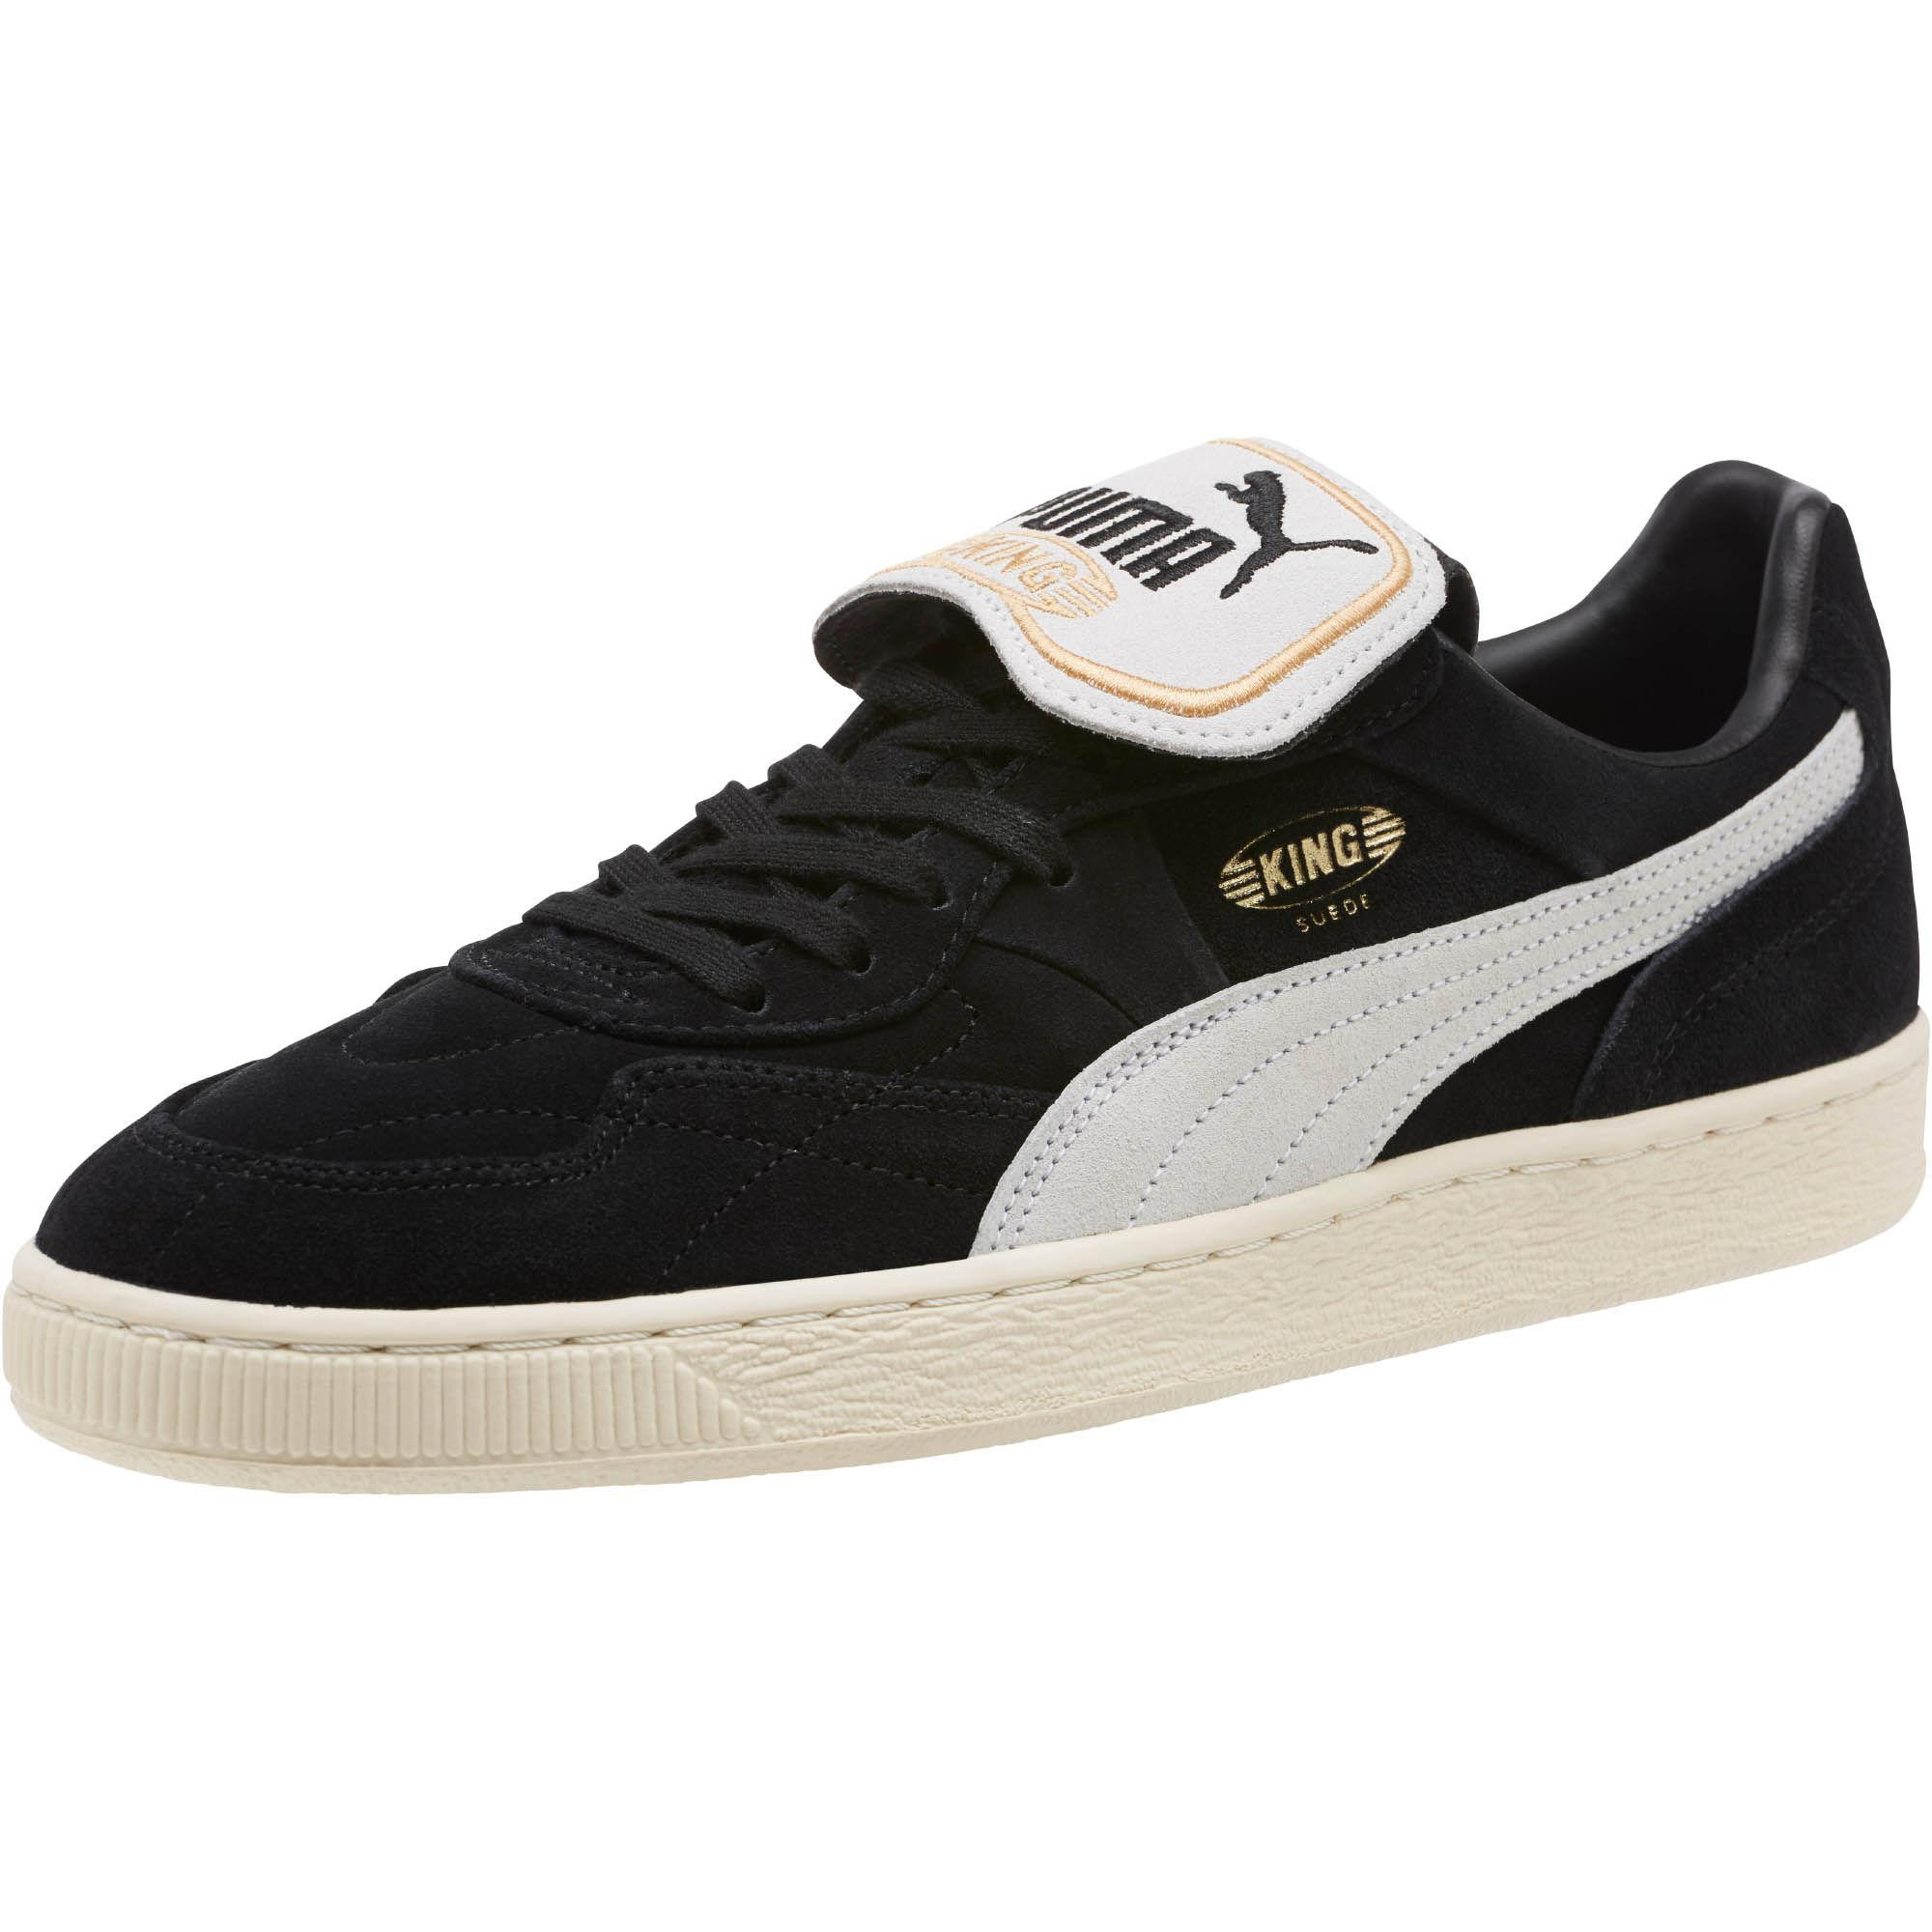 PUMA King Suede Legends in Black for